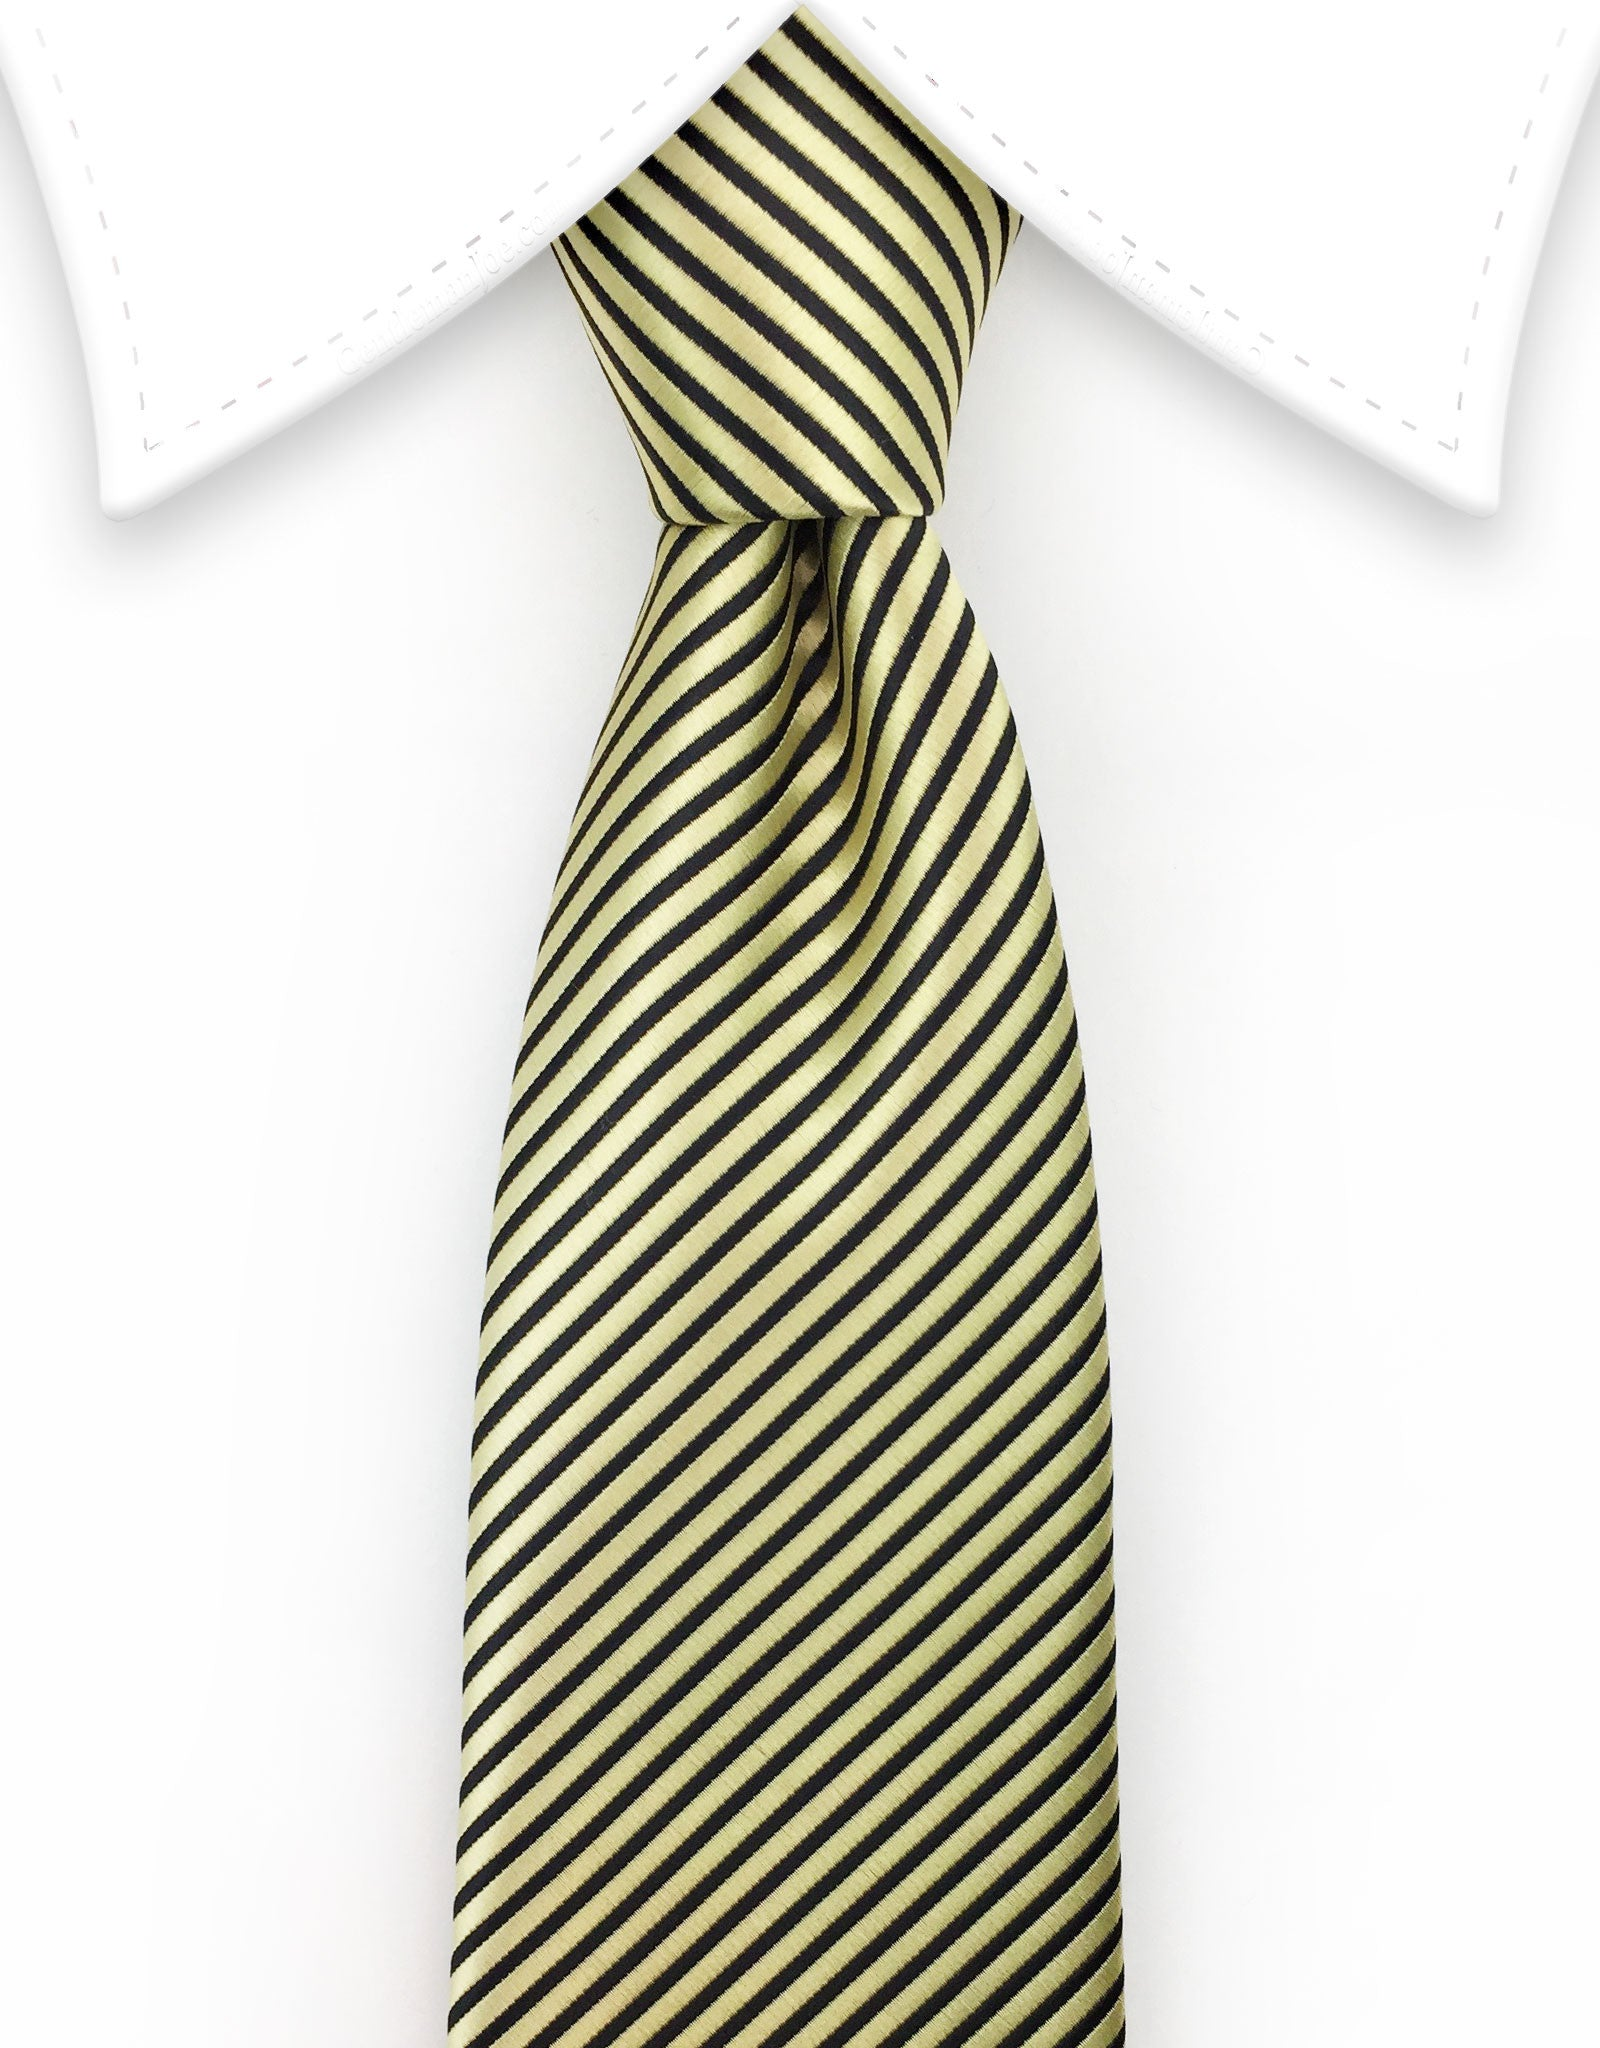 Gold & Black Pinstriped Teen Tie